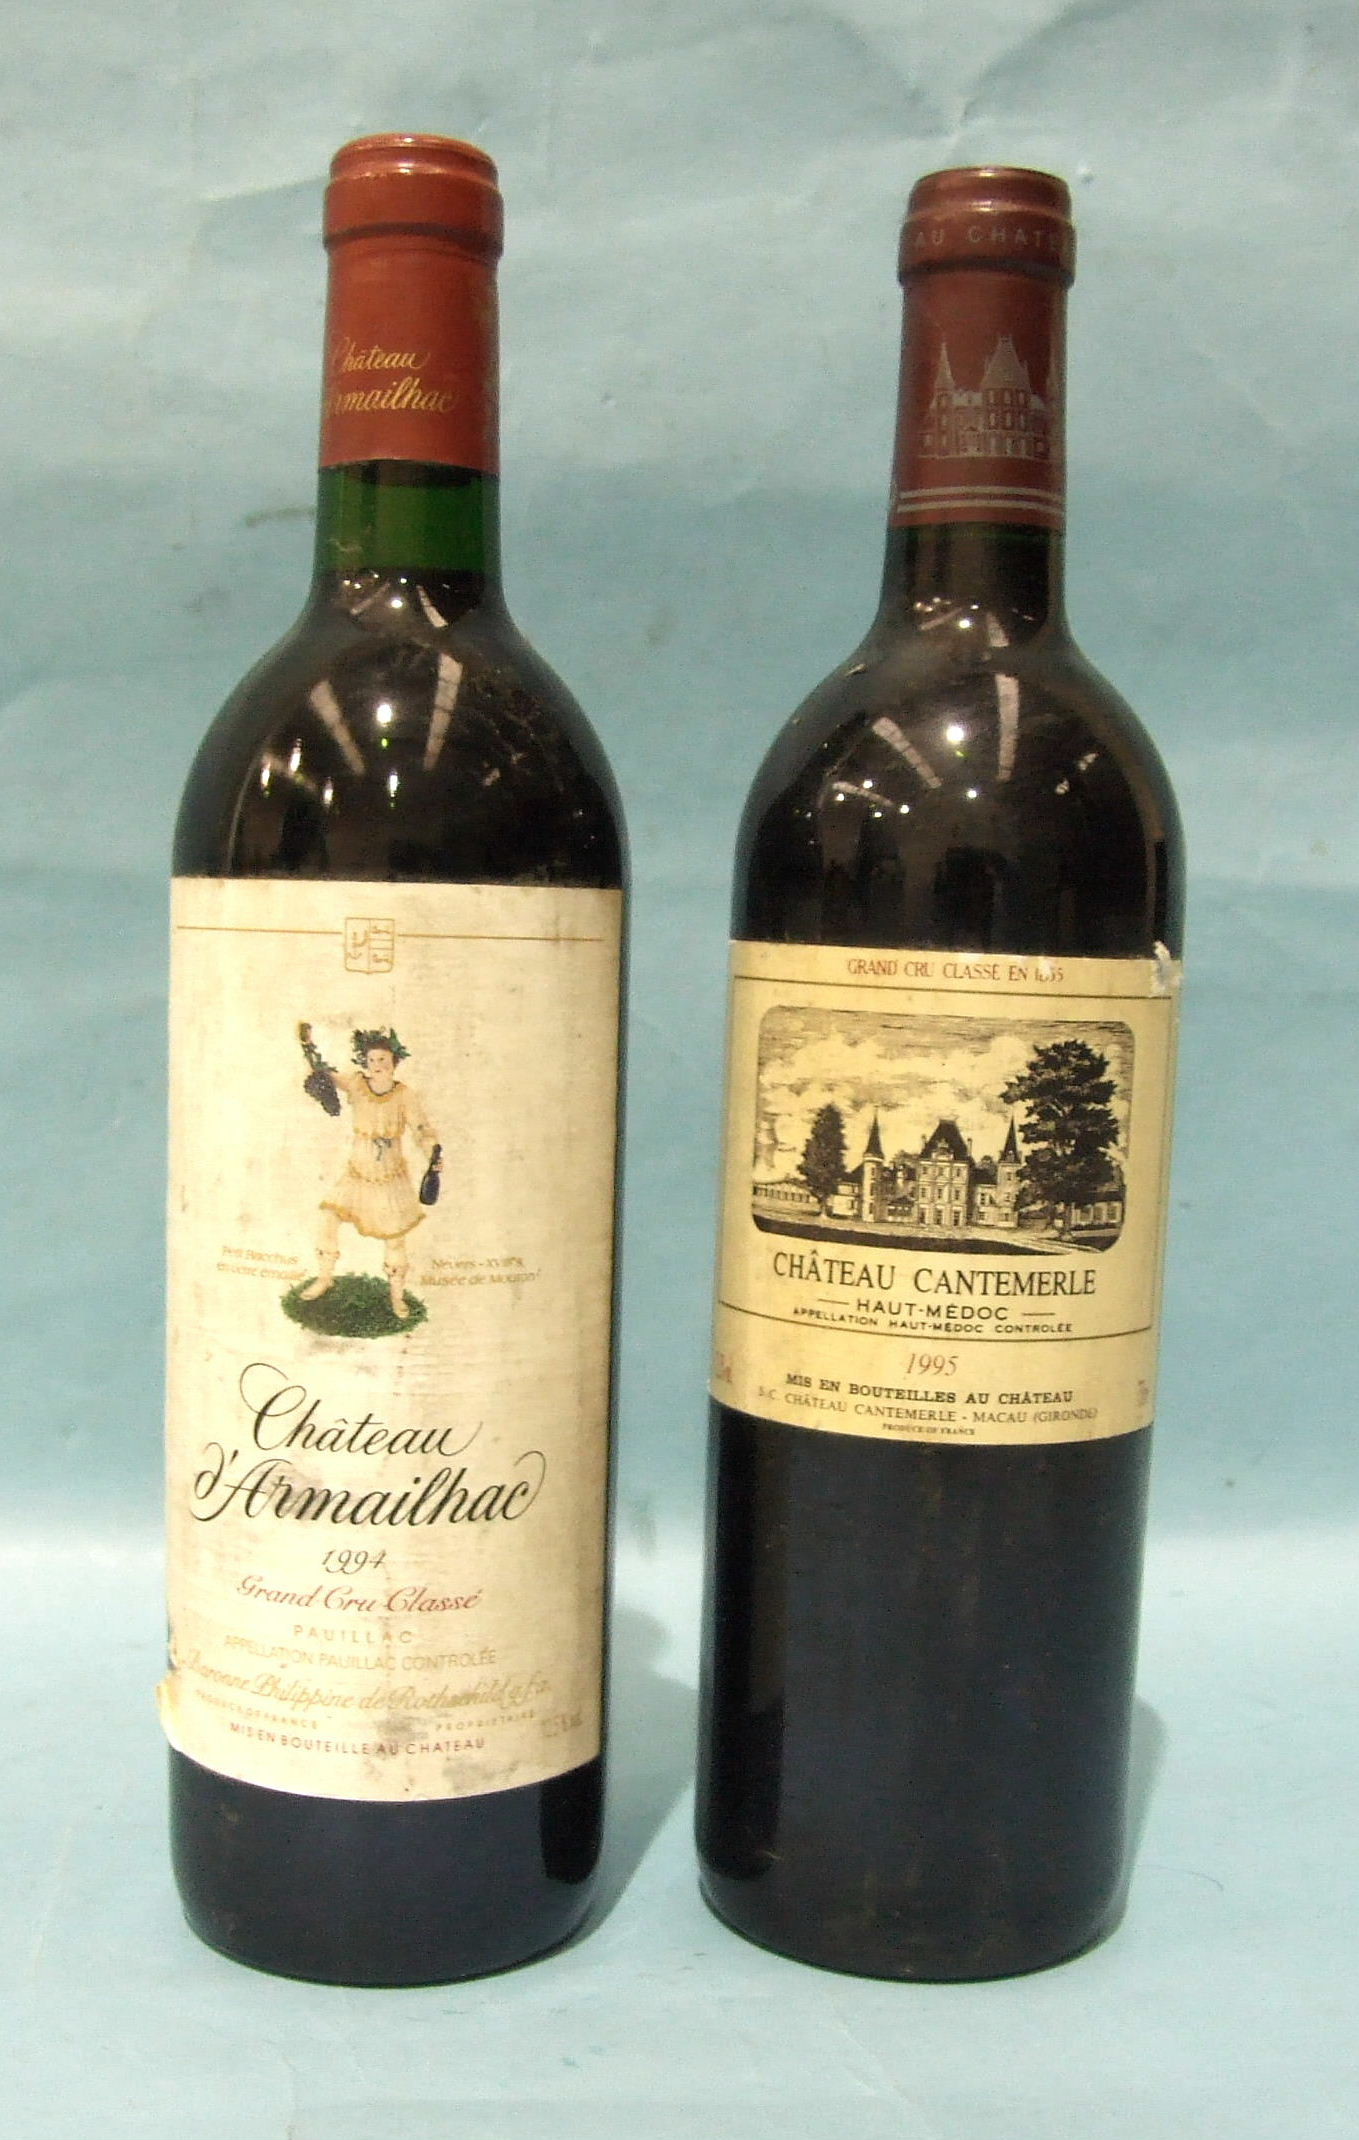 Lot 20 - Chateau Cantemerle 1995, one bottle and Chateau Armaillac 1994, one bottle, (2).